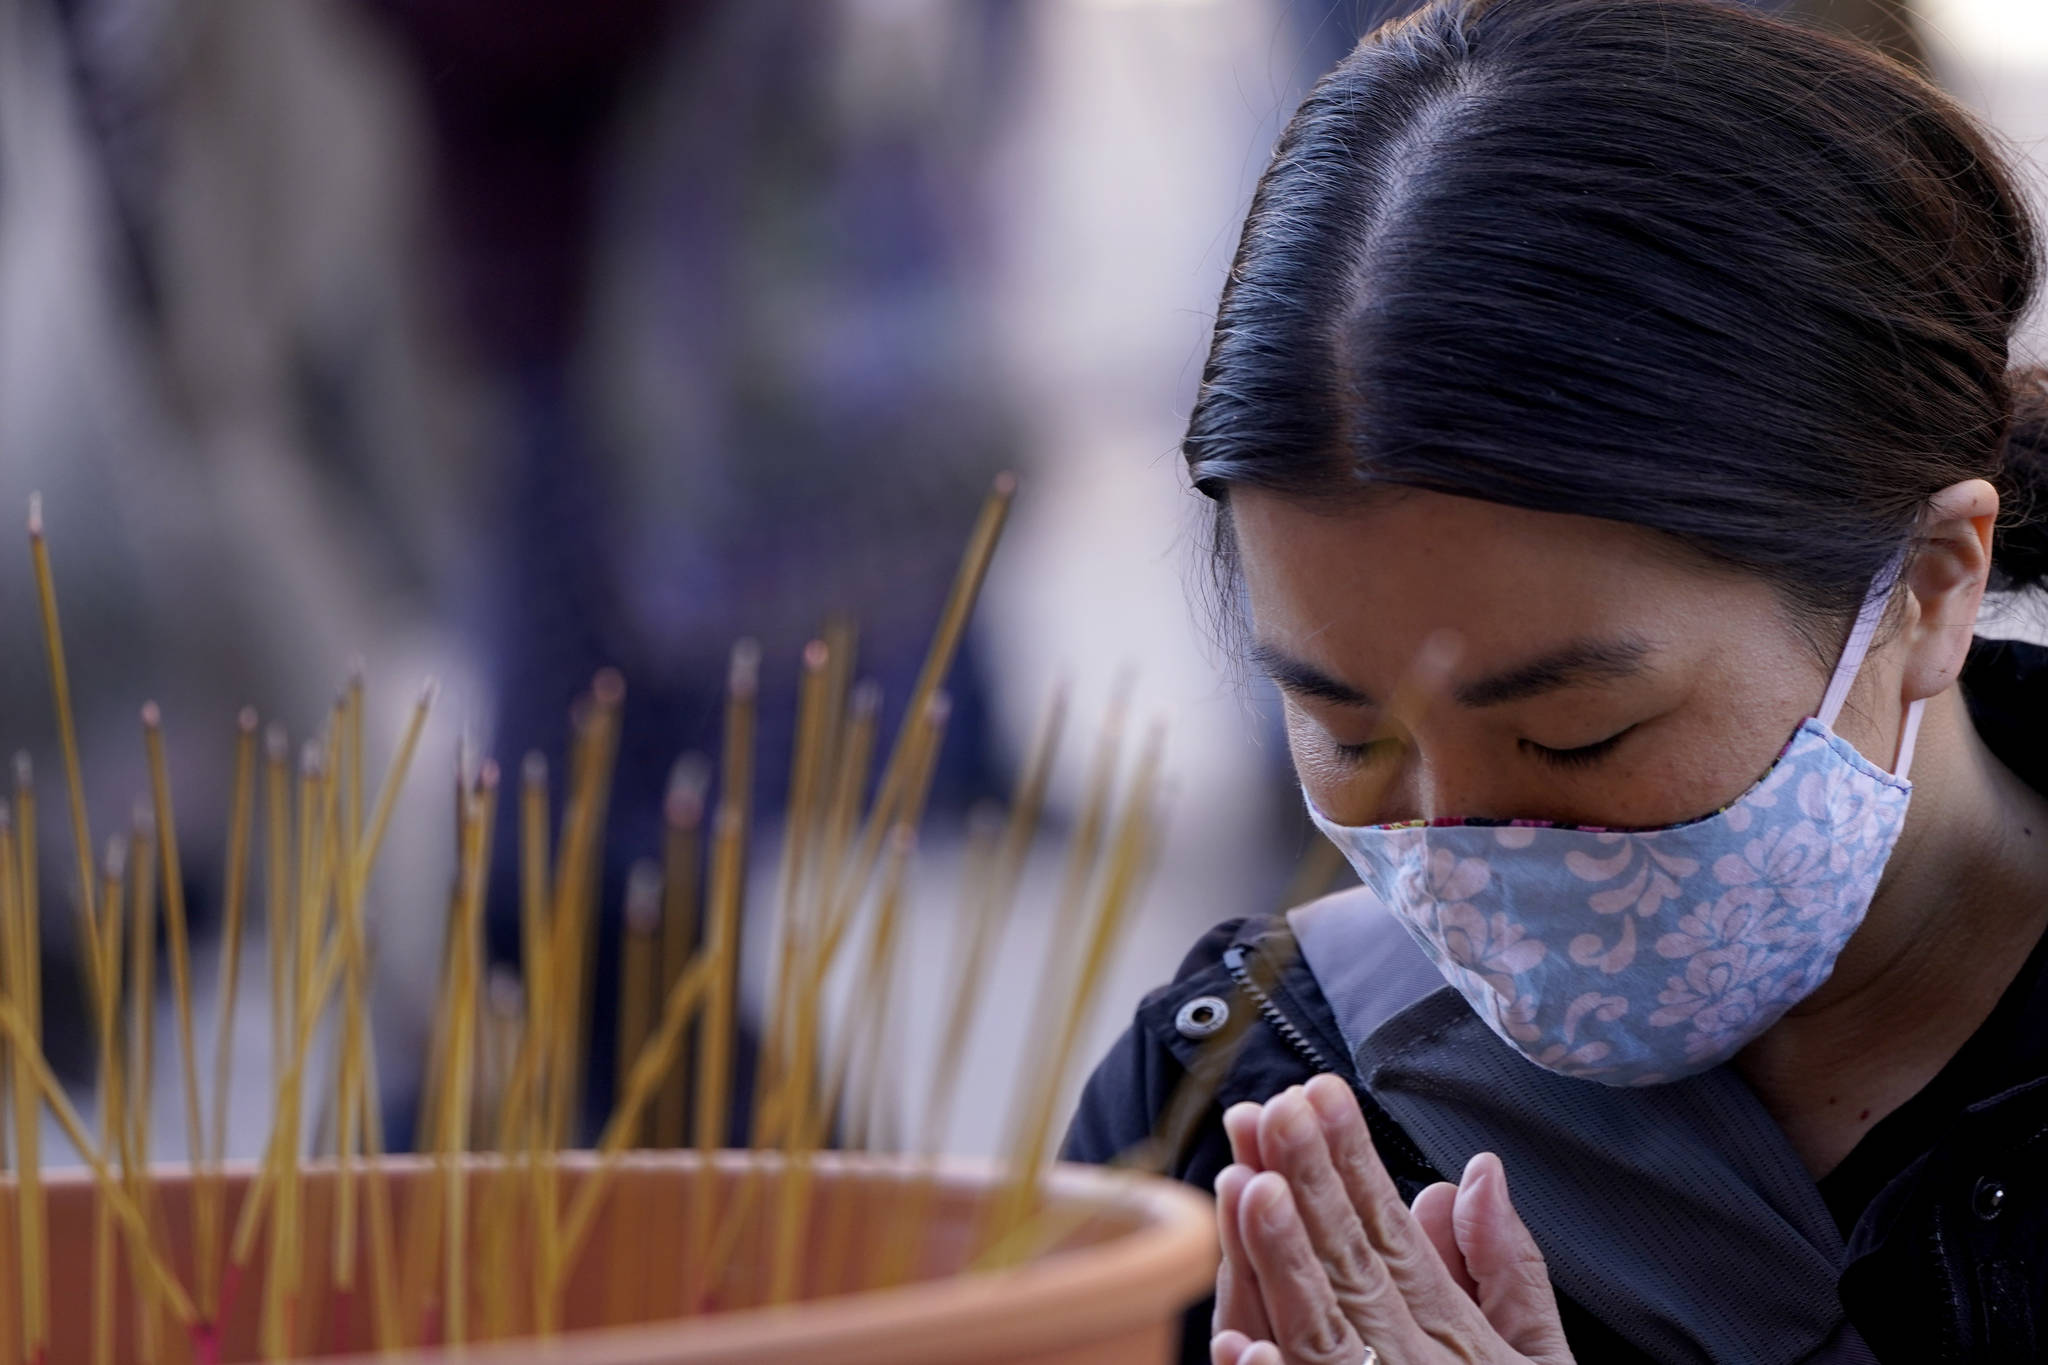 A woman prays in front of incense sticks to honor the victims of the Atlanta area massage parlor shootings during a memorial in Kansas City, Mo., Sunday, March 28, 2021. The March 17 shootings at three Georgia massage parlors and spas that left eight people dead, six of them women of Asian descent, come on the heels of a recent wave of attacks against Asian Americans since the coronavirus entered the United States. (AP Photo/Charlie Riedel)